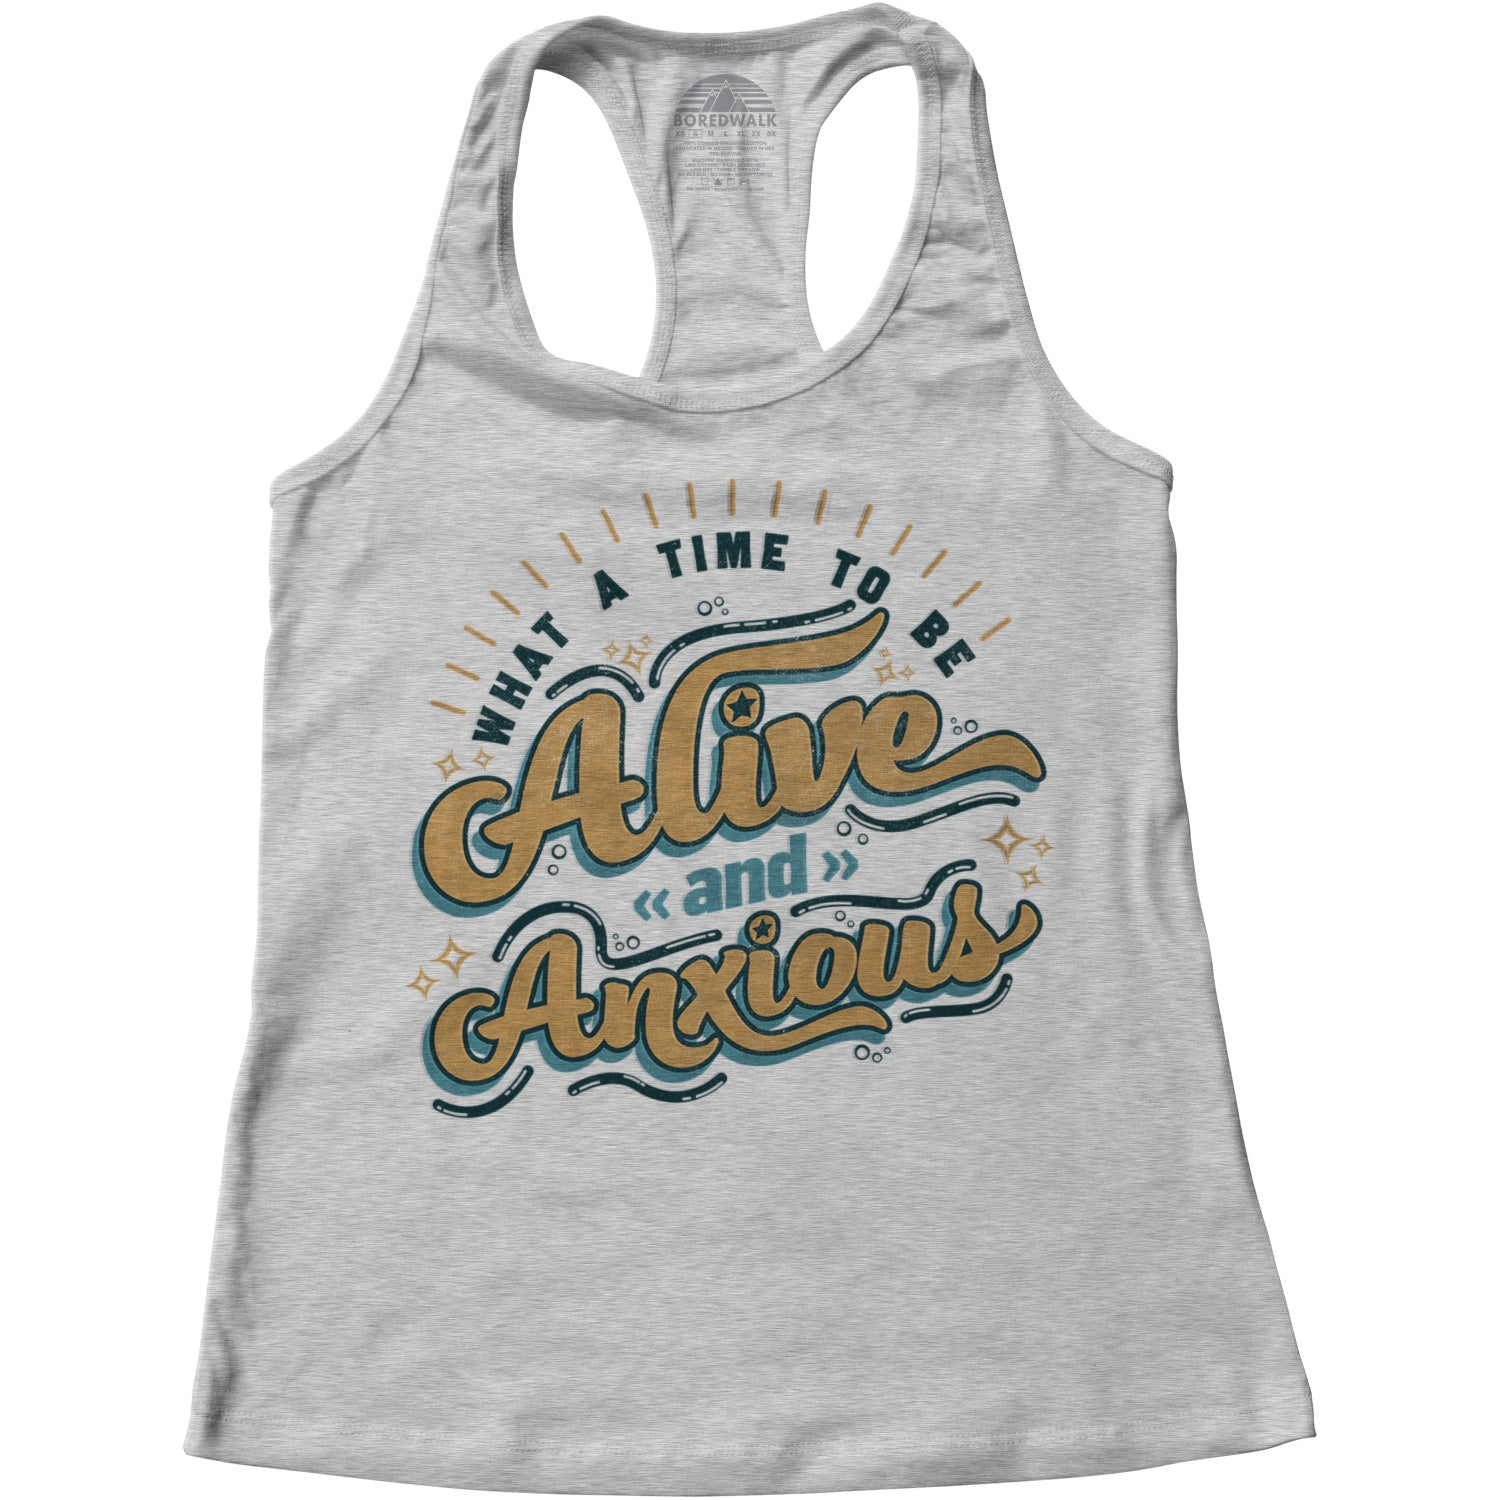 Women's What a Time to be Alive and Anxious Racerback Tank Top